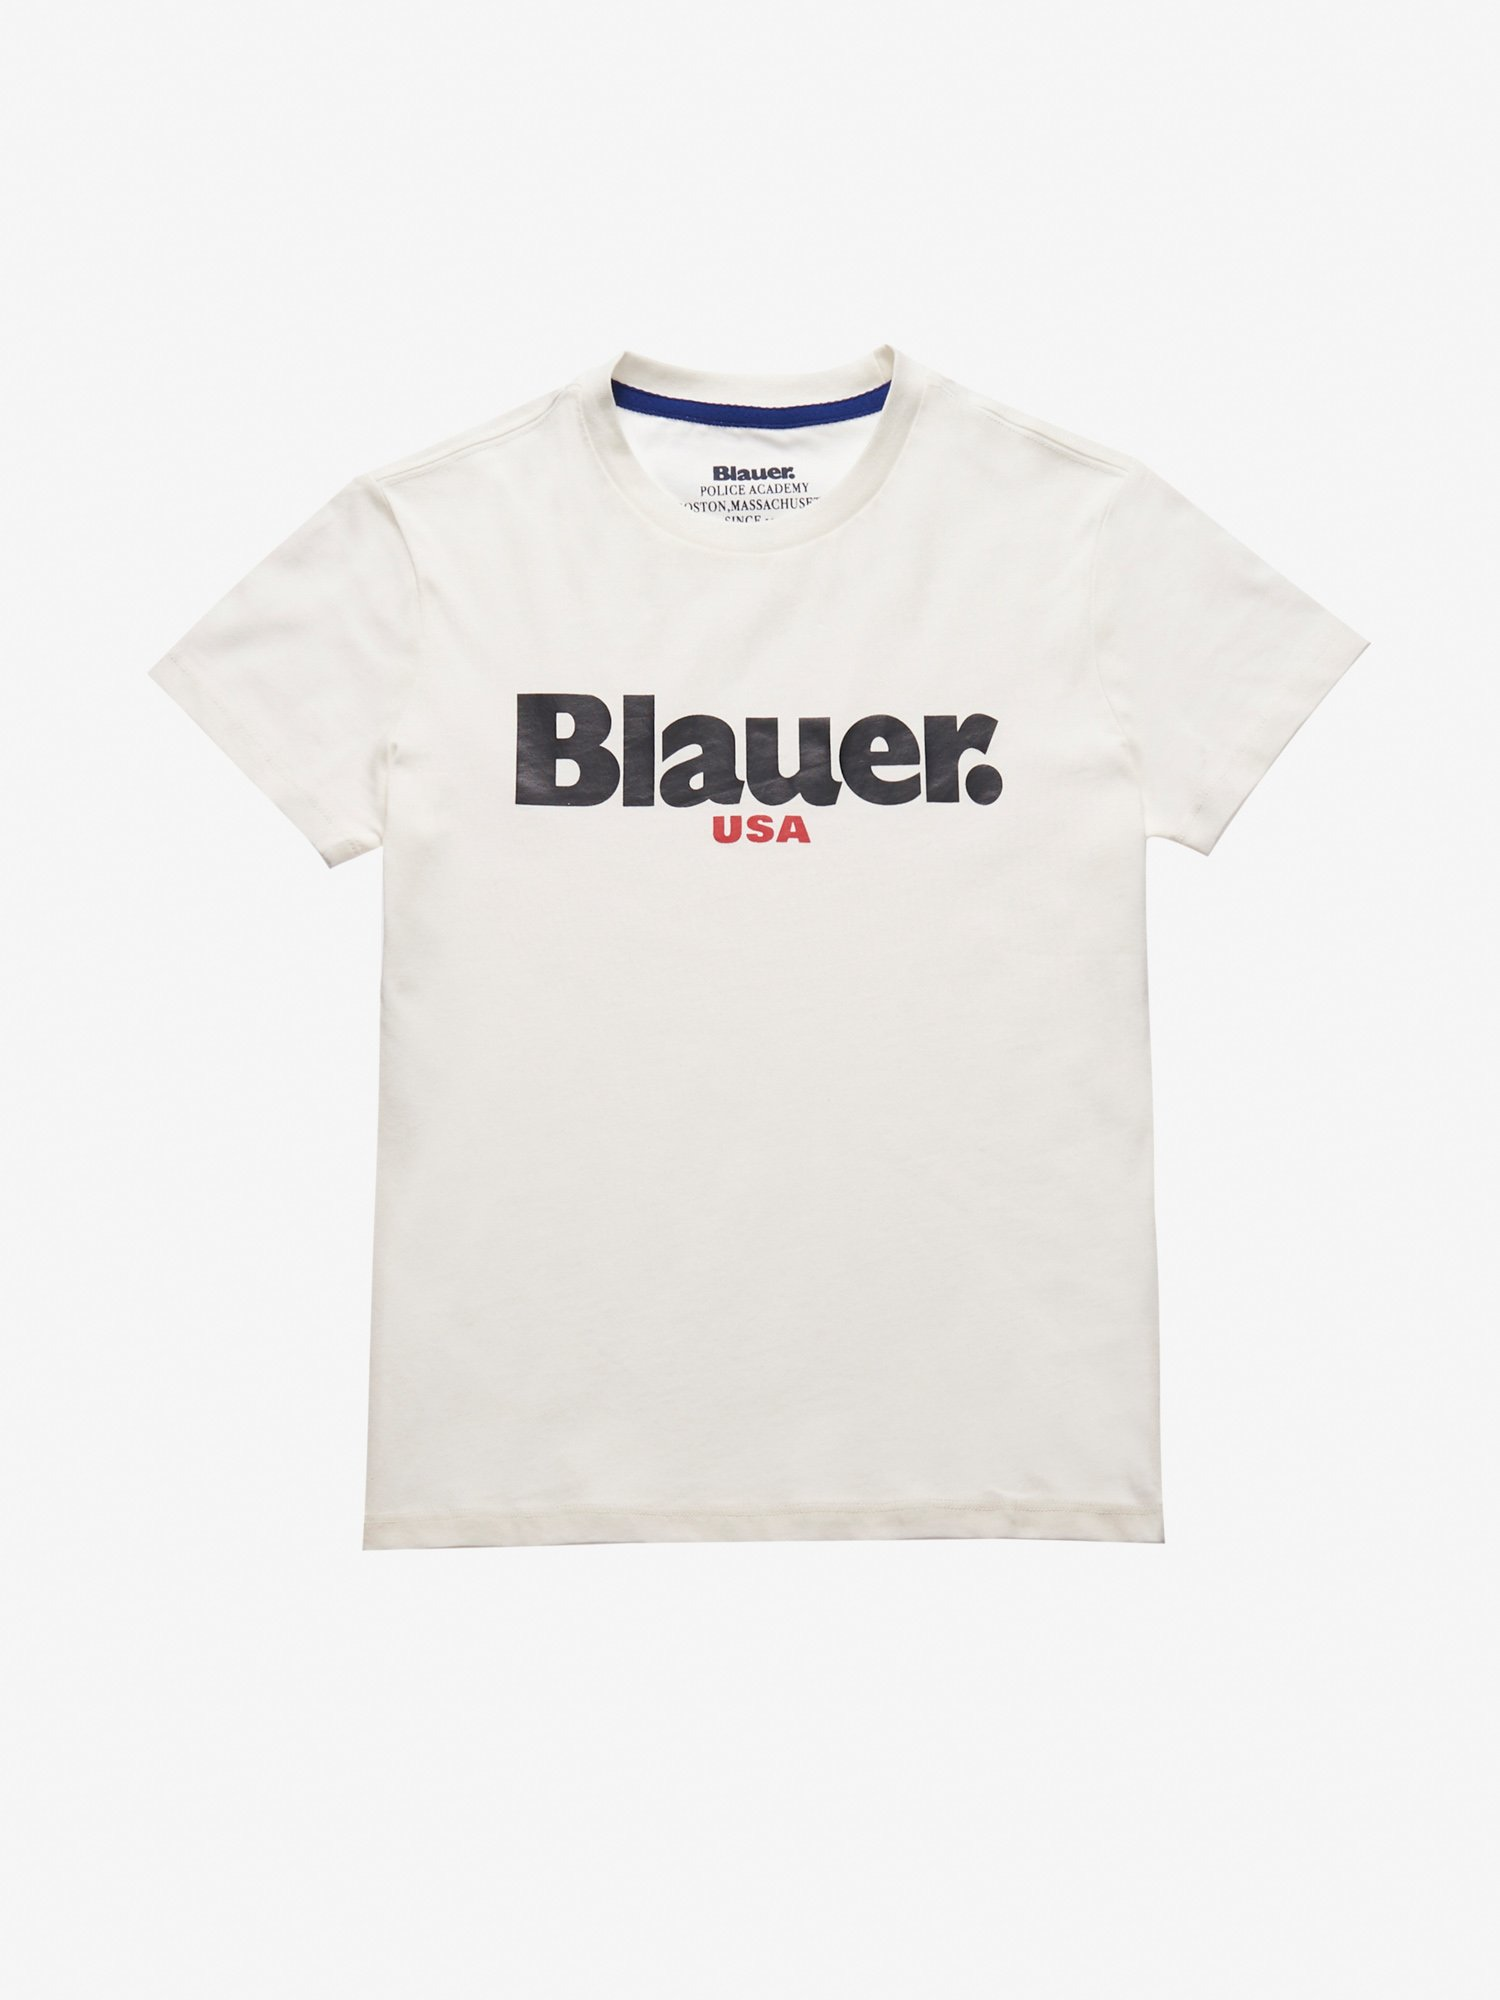 T-SHIRT JUNIOR BLAUER USA - Blauer